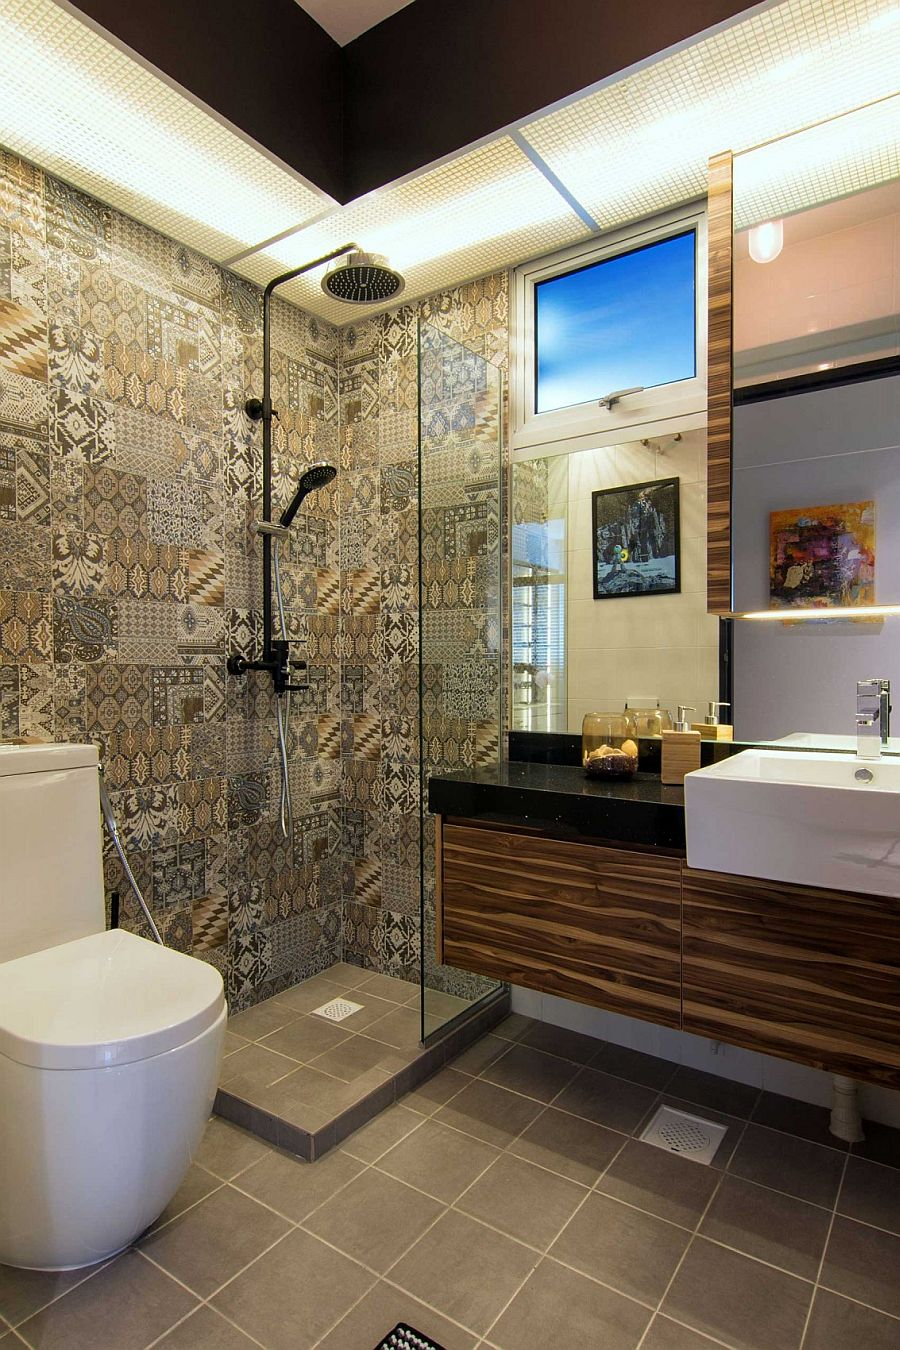 Tiles bring pattern and color to shower area in the bathroom